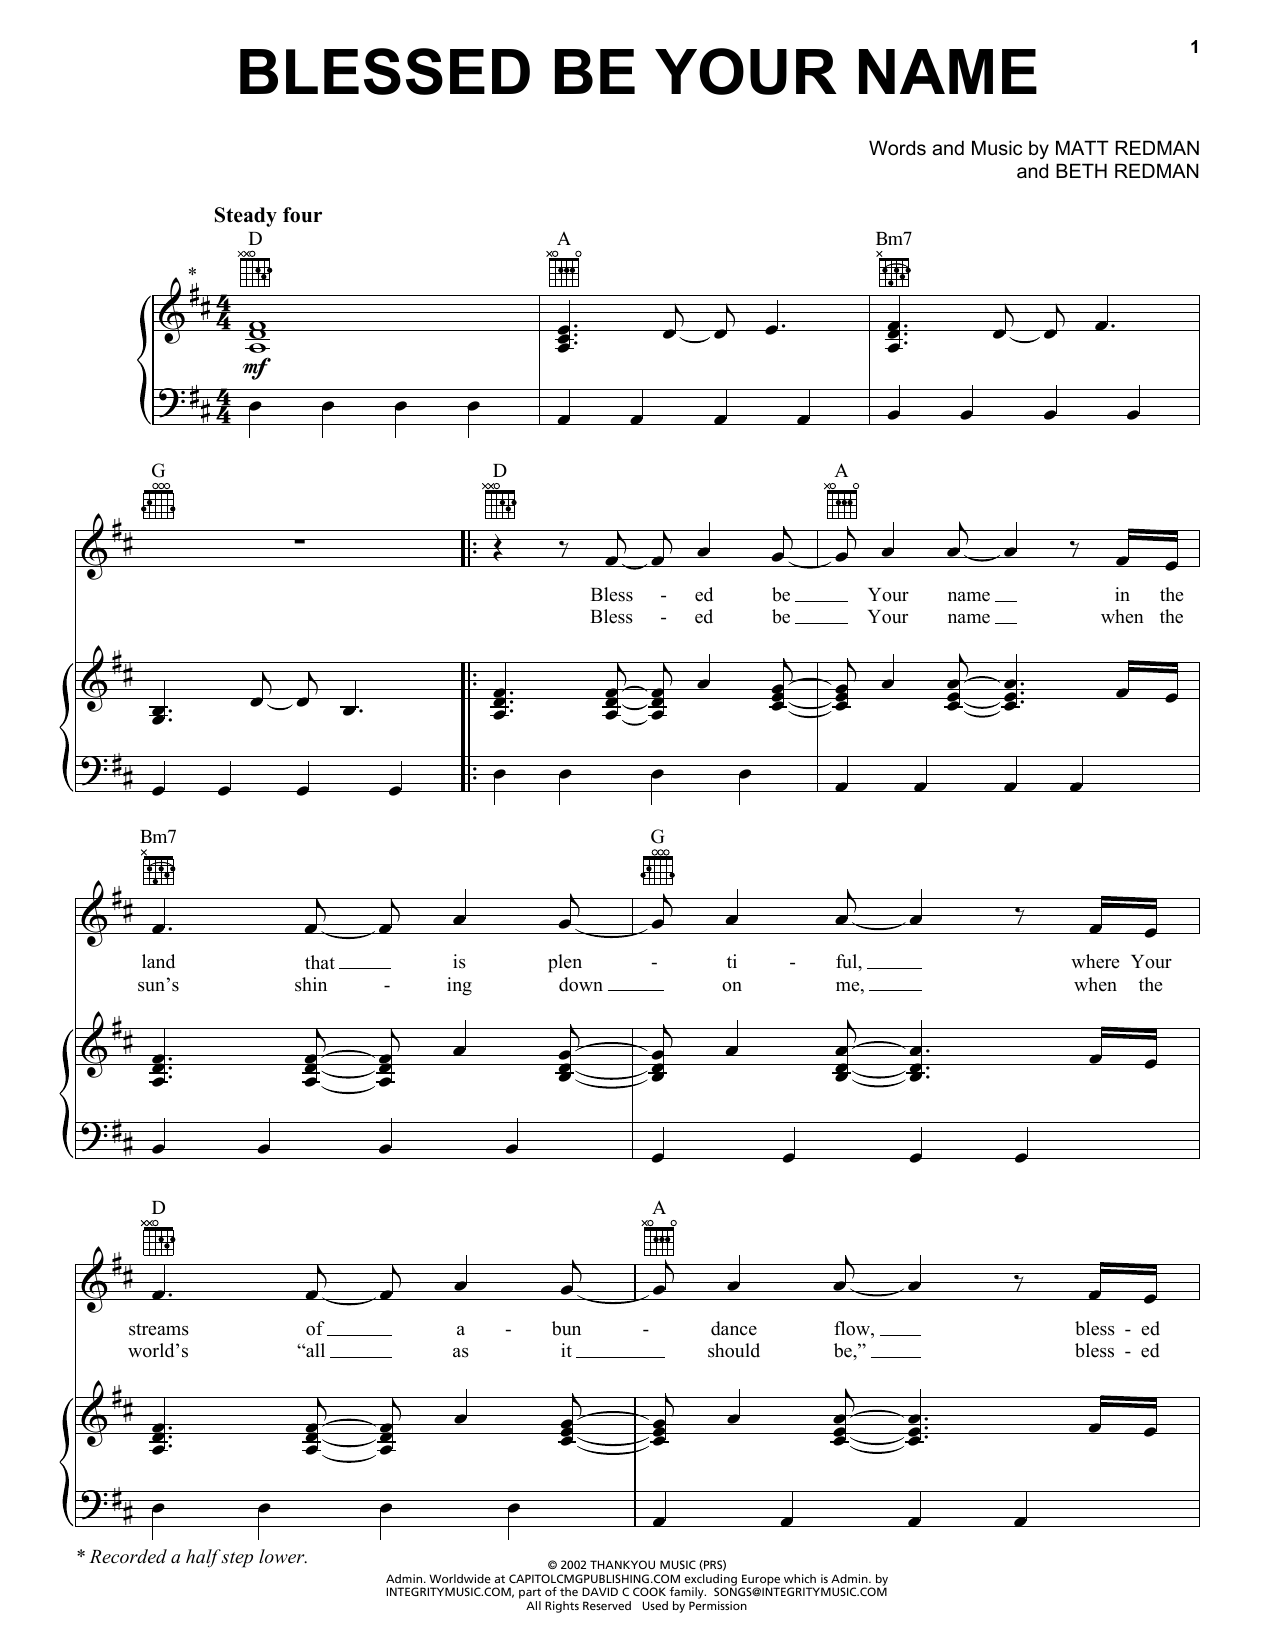 Blessed Be Your Name | Sheet Music Direct